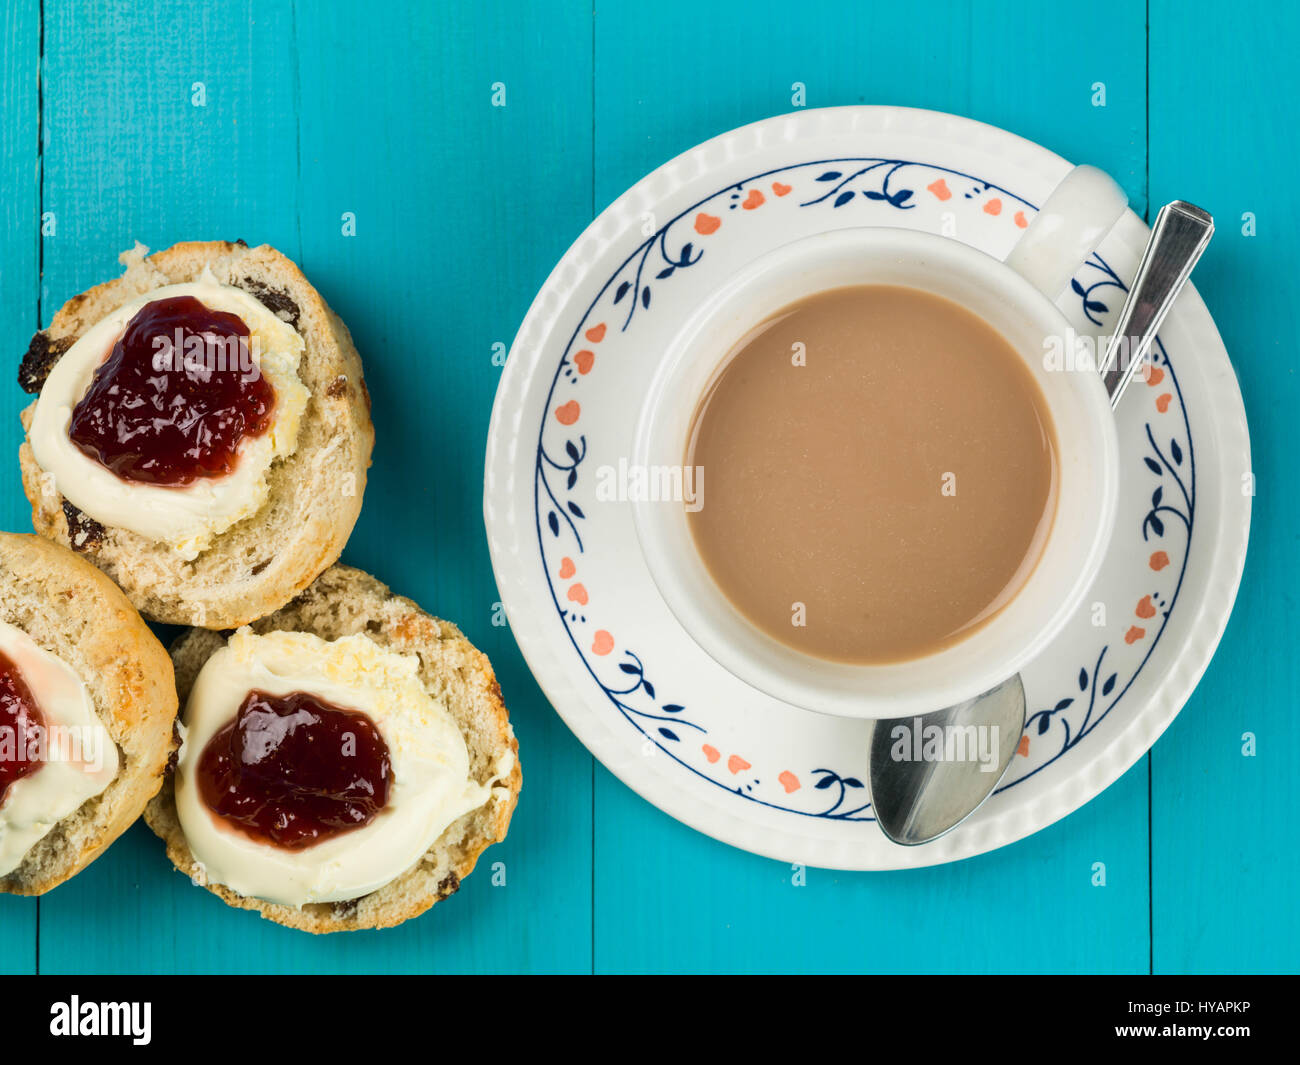 Cup of Tea or Coffee With Scones Clotted Cream and Strawberry Jam Against a Blue Background - Stock Image